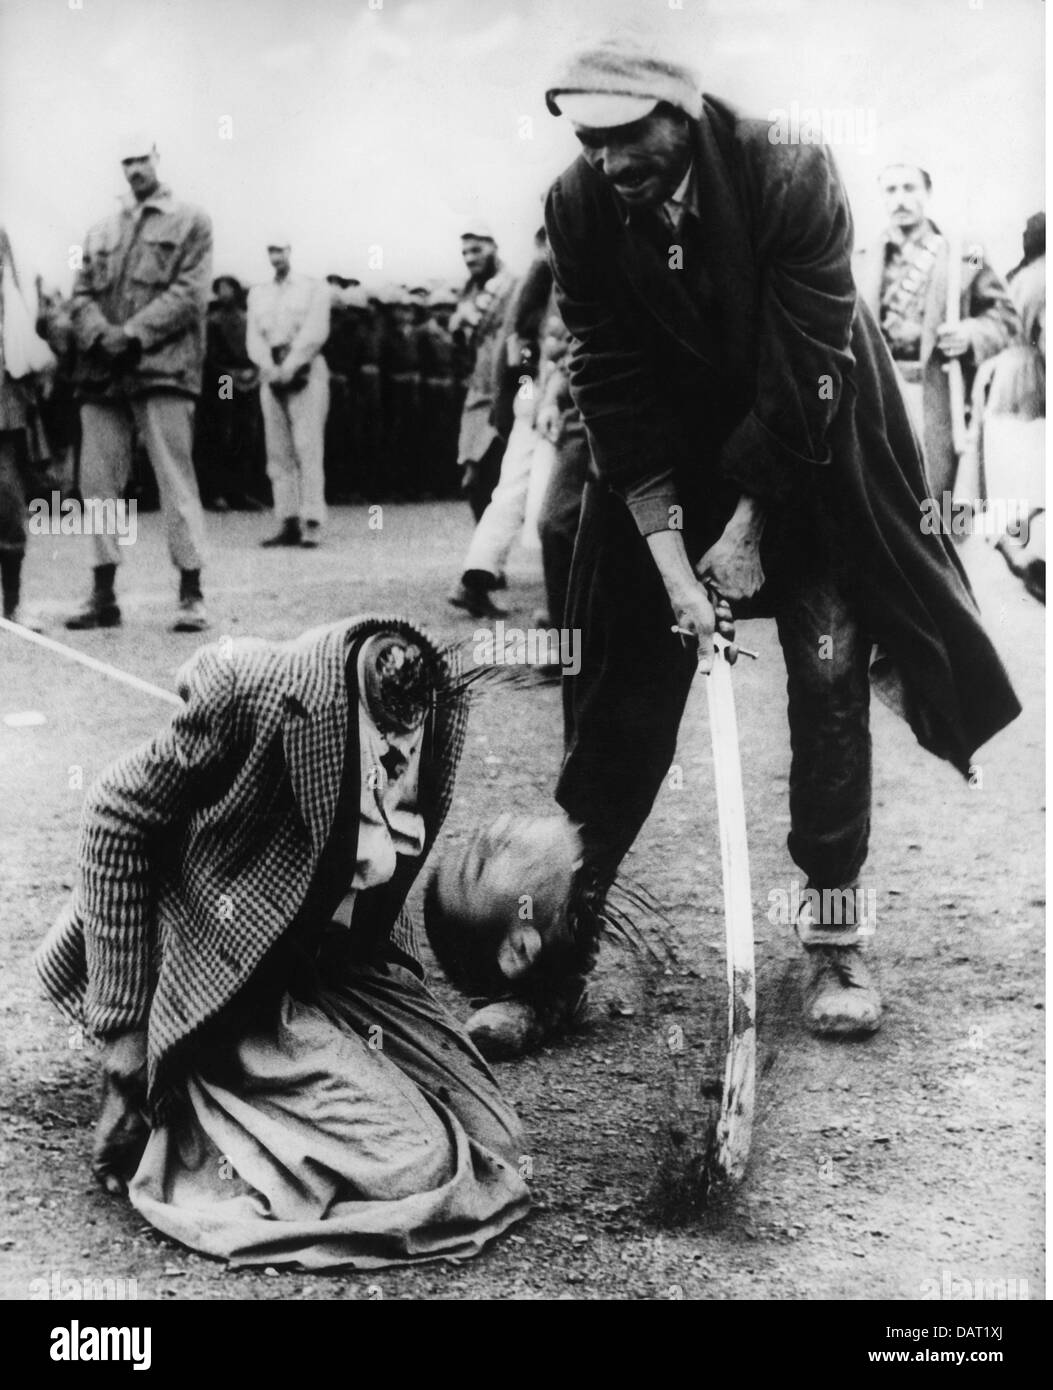 justice, penitentiary system, beheading, execution by the sword, Yemen, 1963, Additional-Rights-Clearences-NA - Stock Image